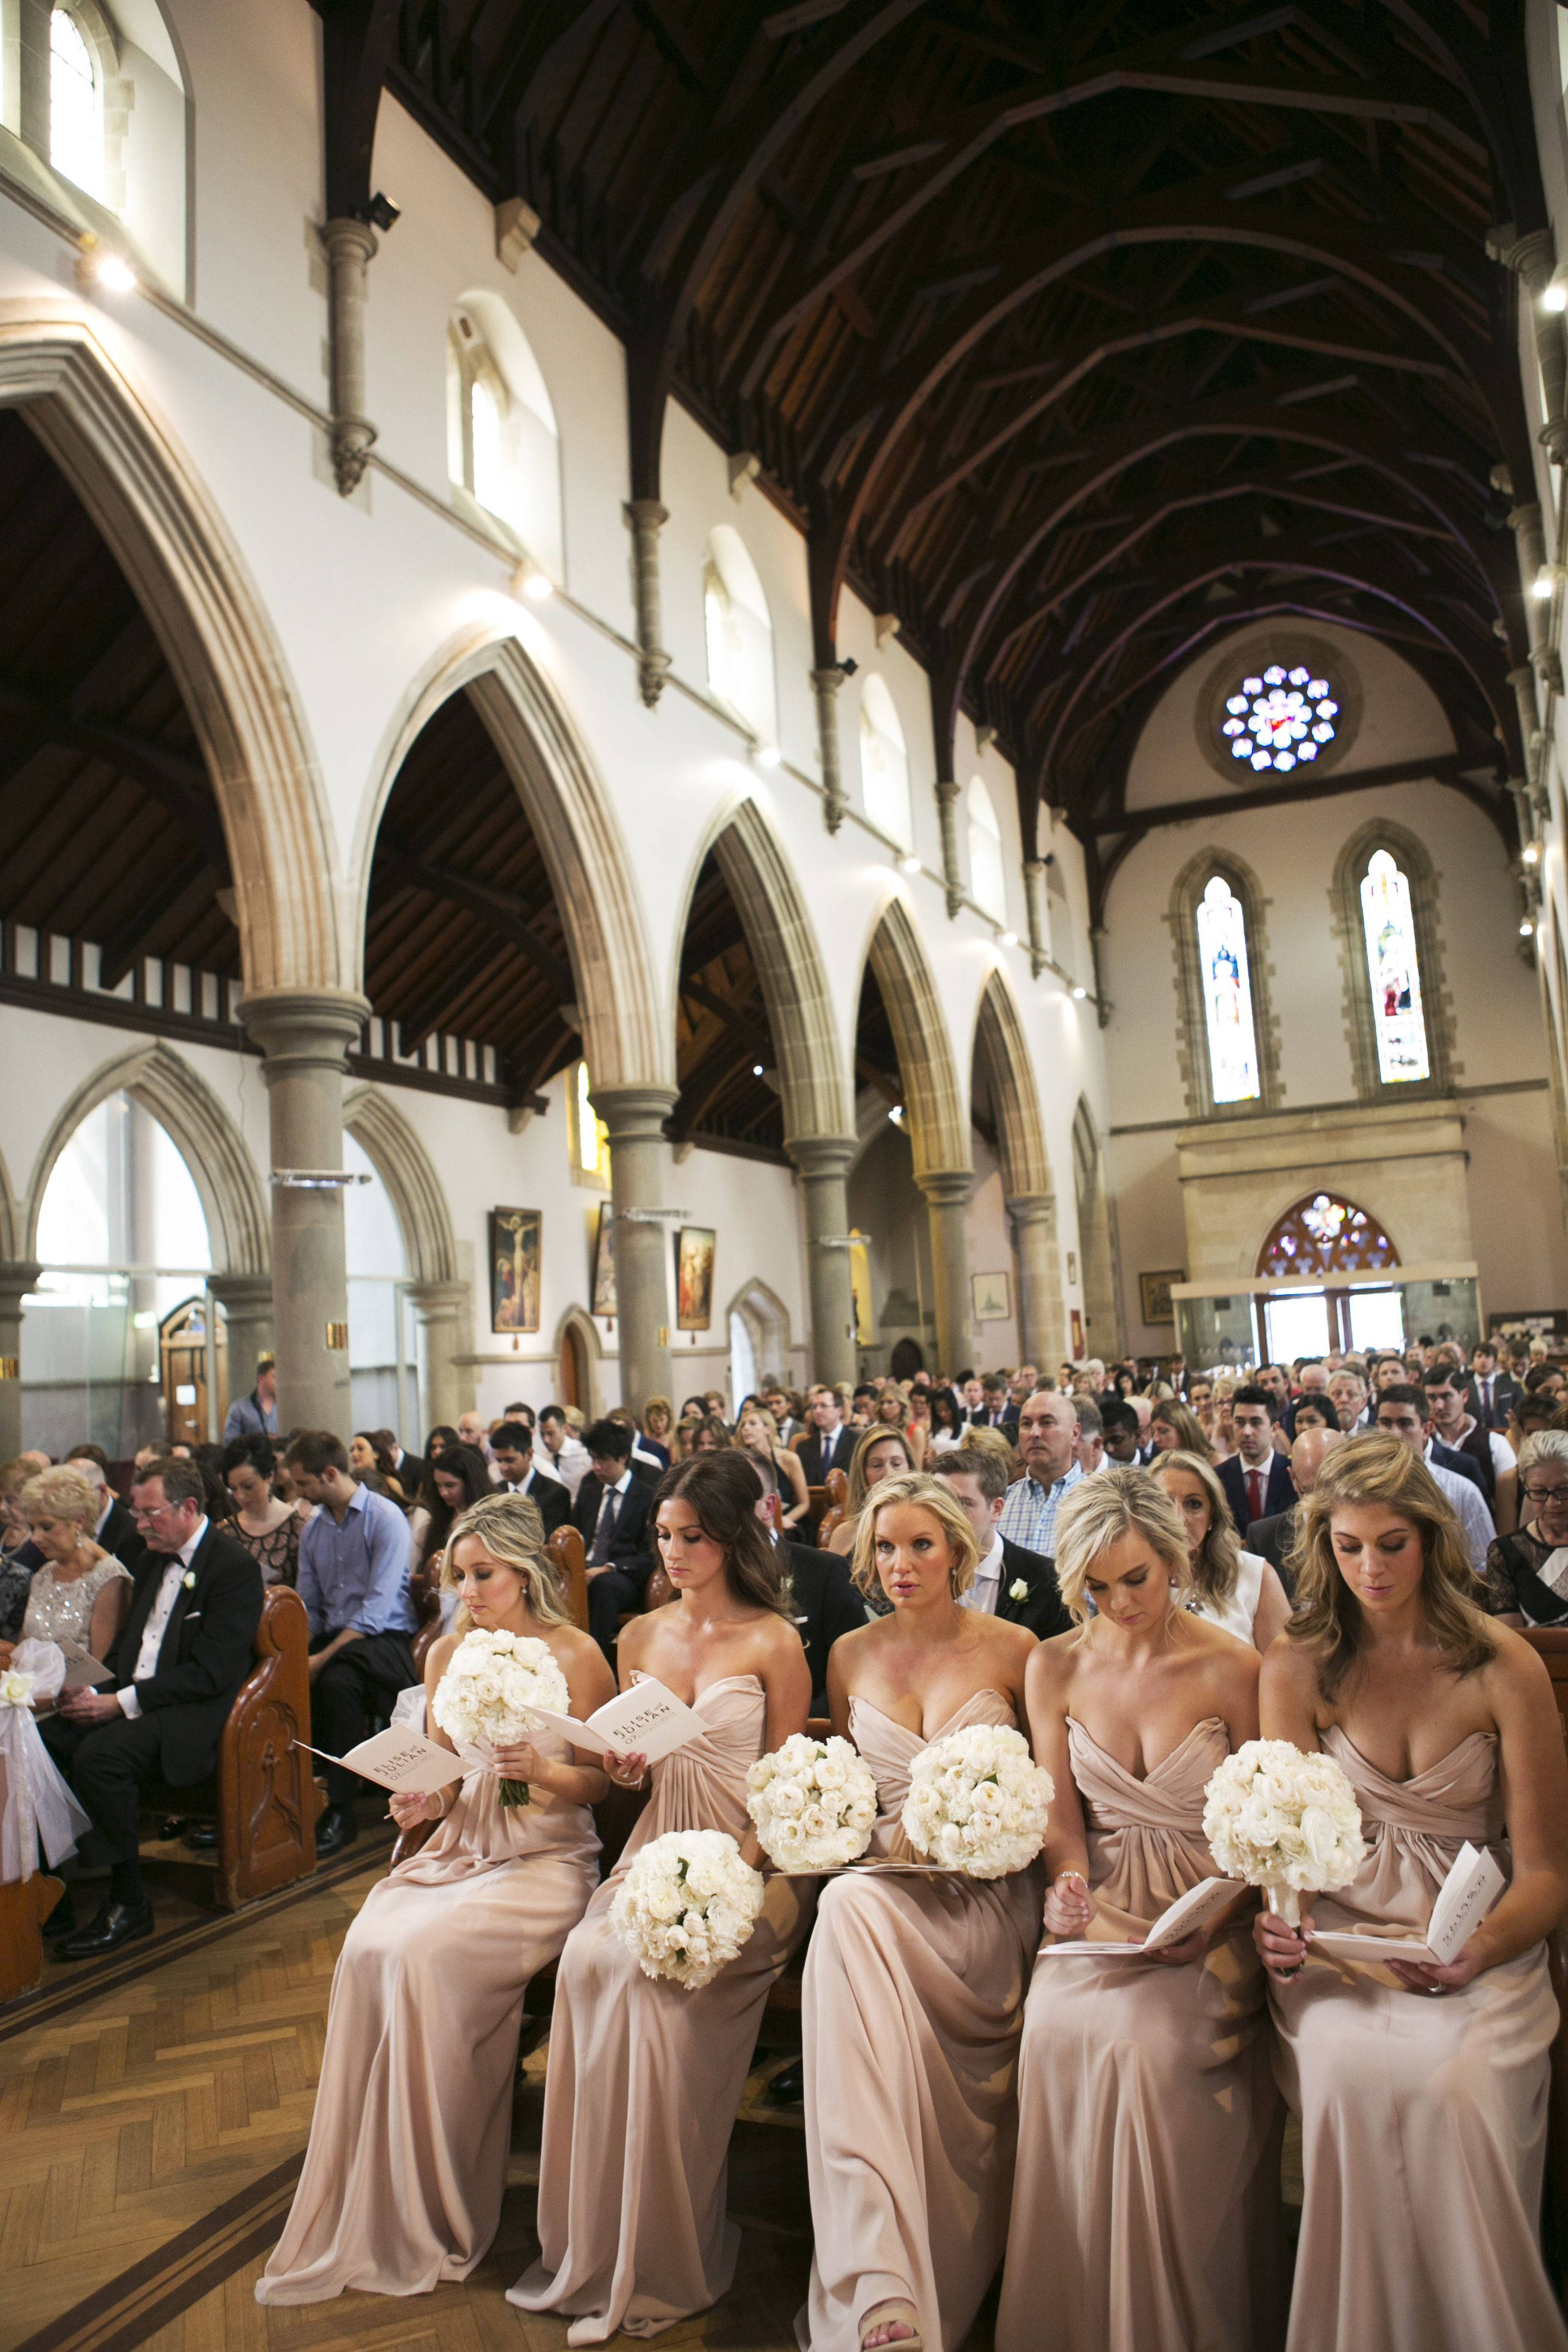 Church wedding ceremony, love those bridesmaids in neutral | itakeyou.co.uk